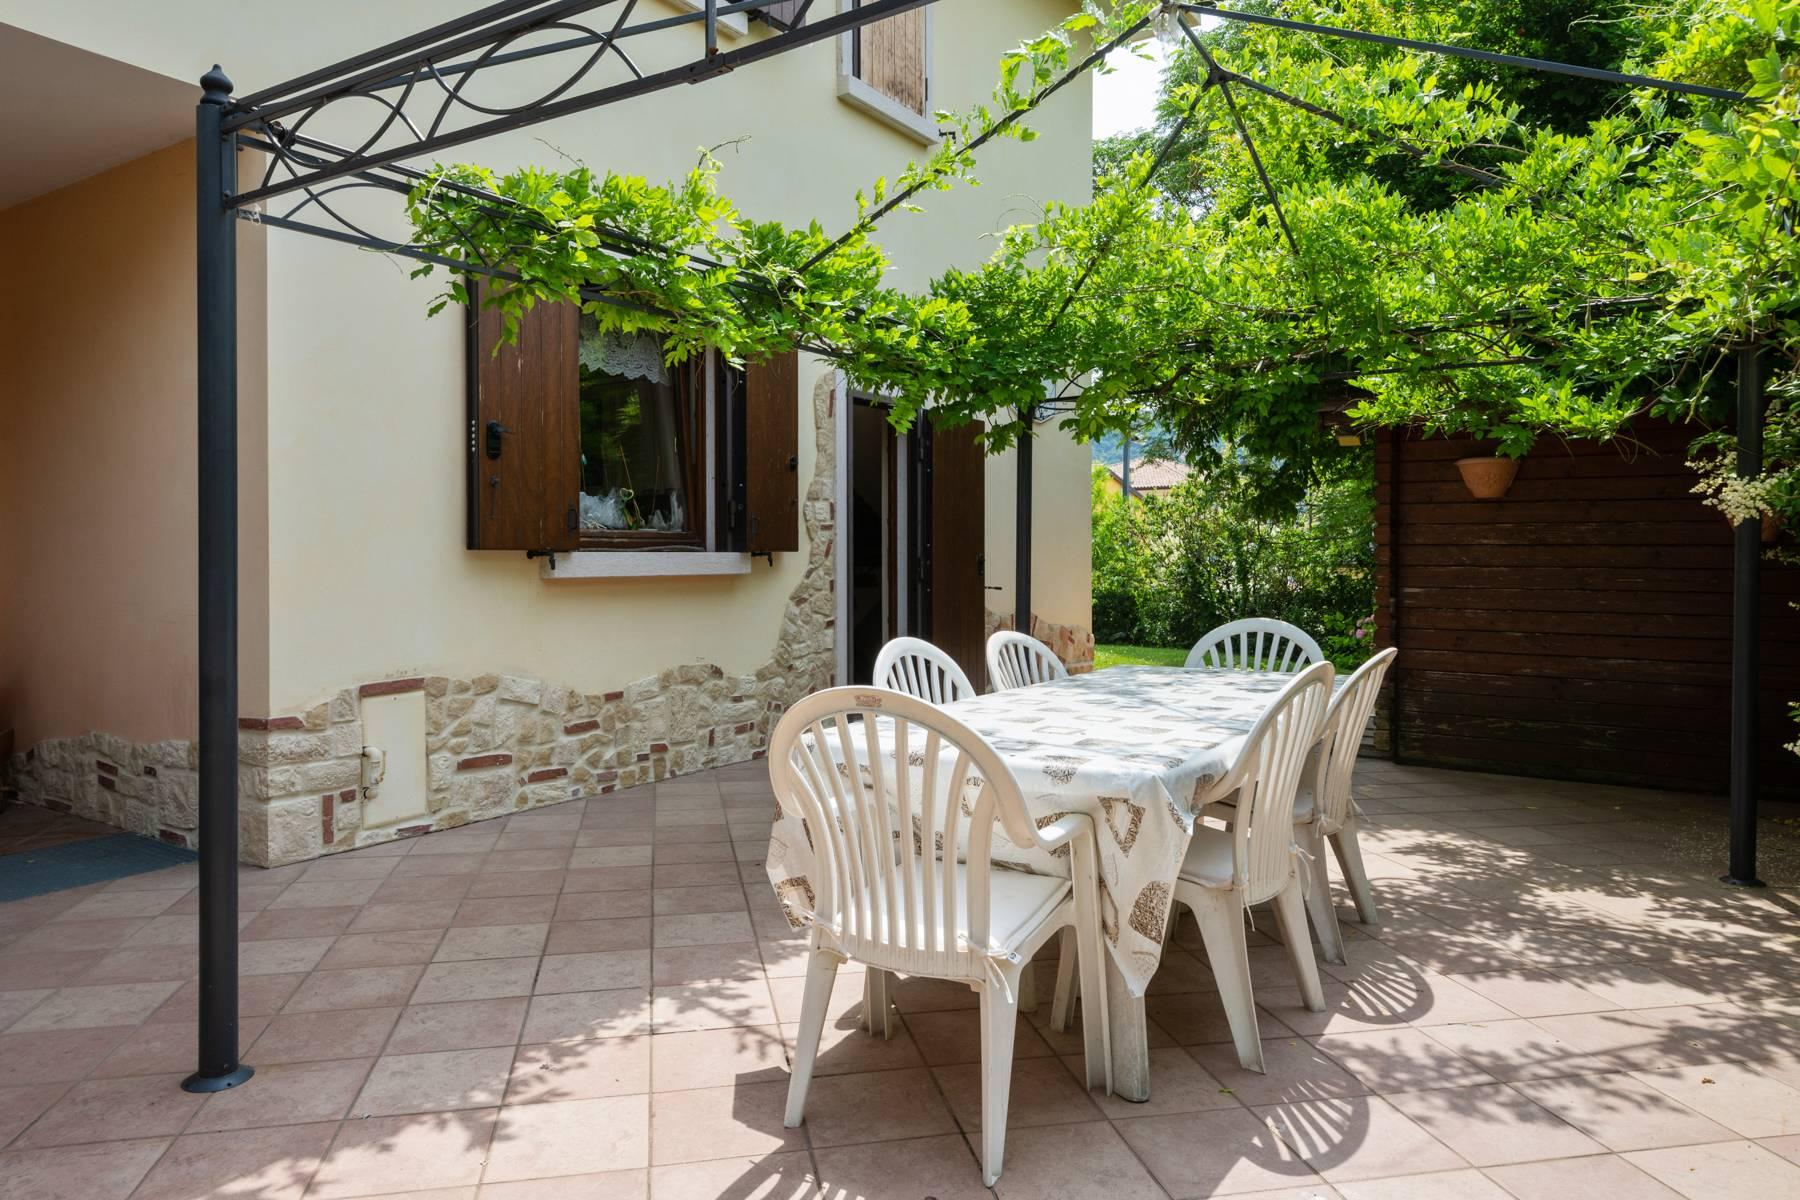 Independent villa with wide garden, just a few steps from the Lake - 4